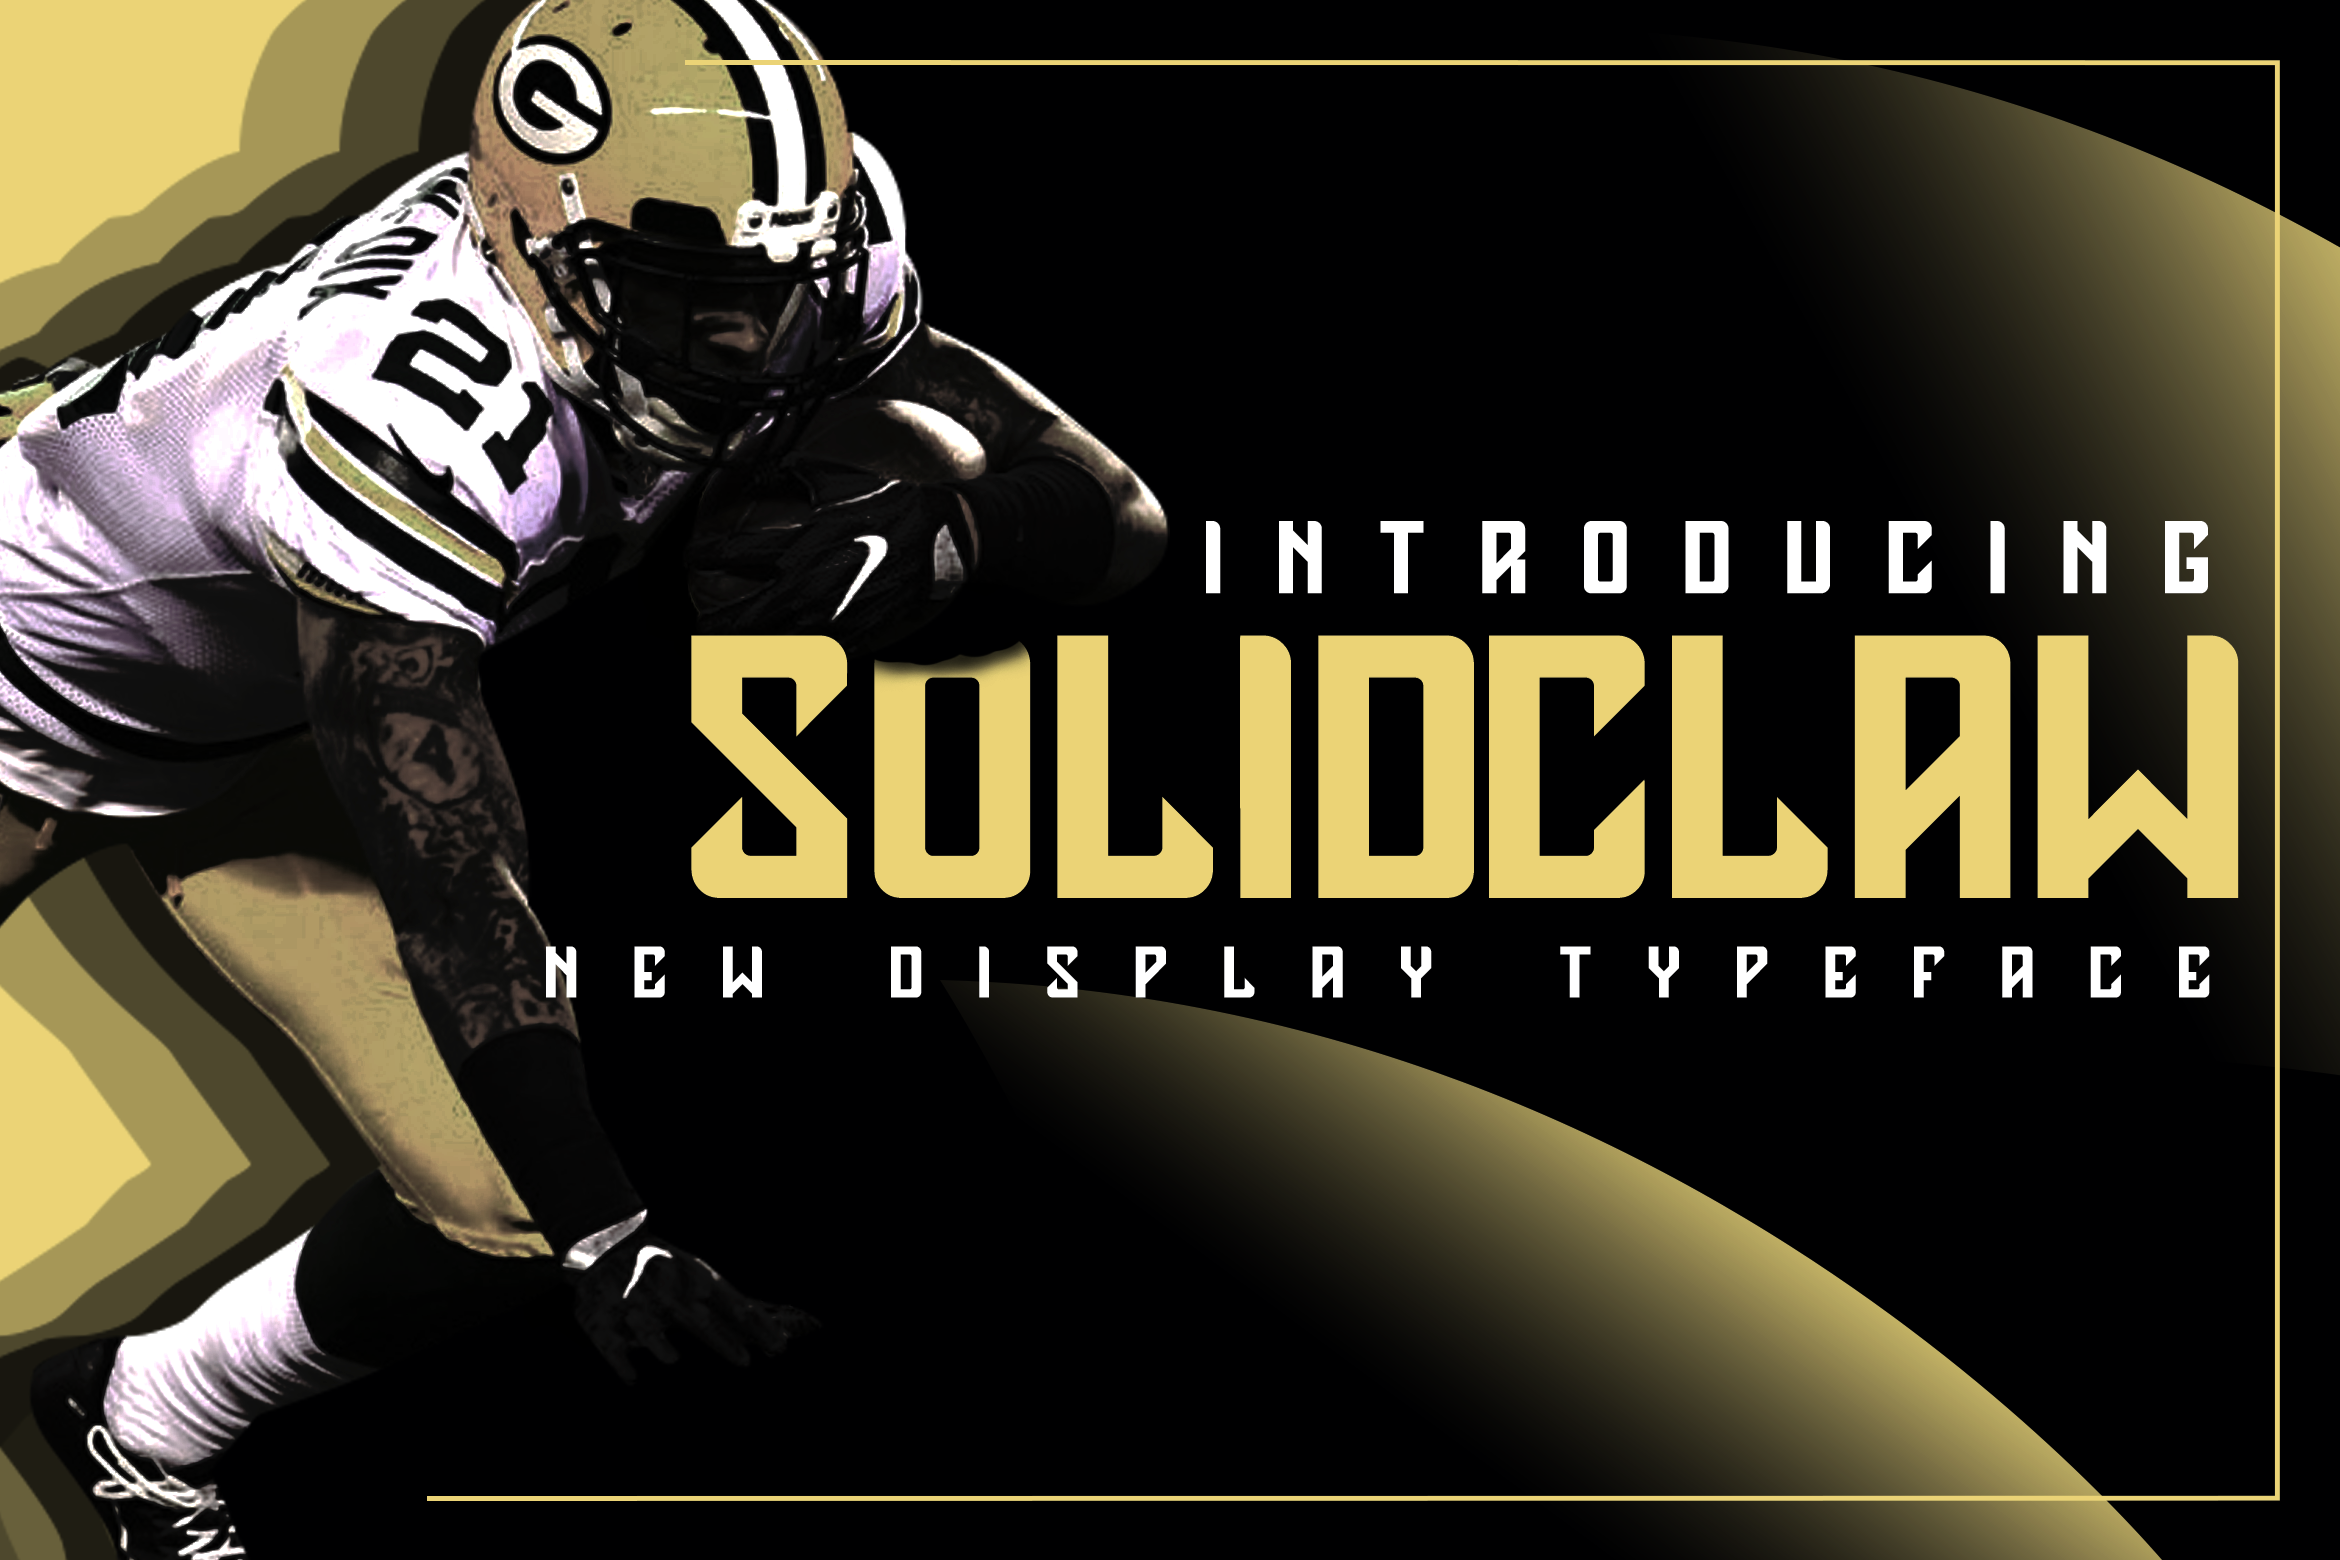 Solidclaw Display font example image 1